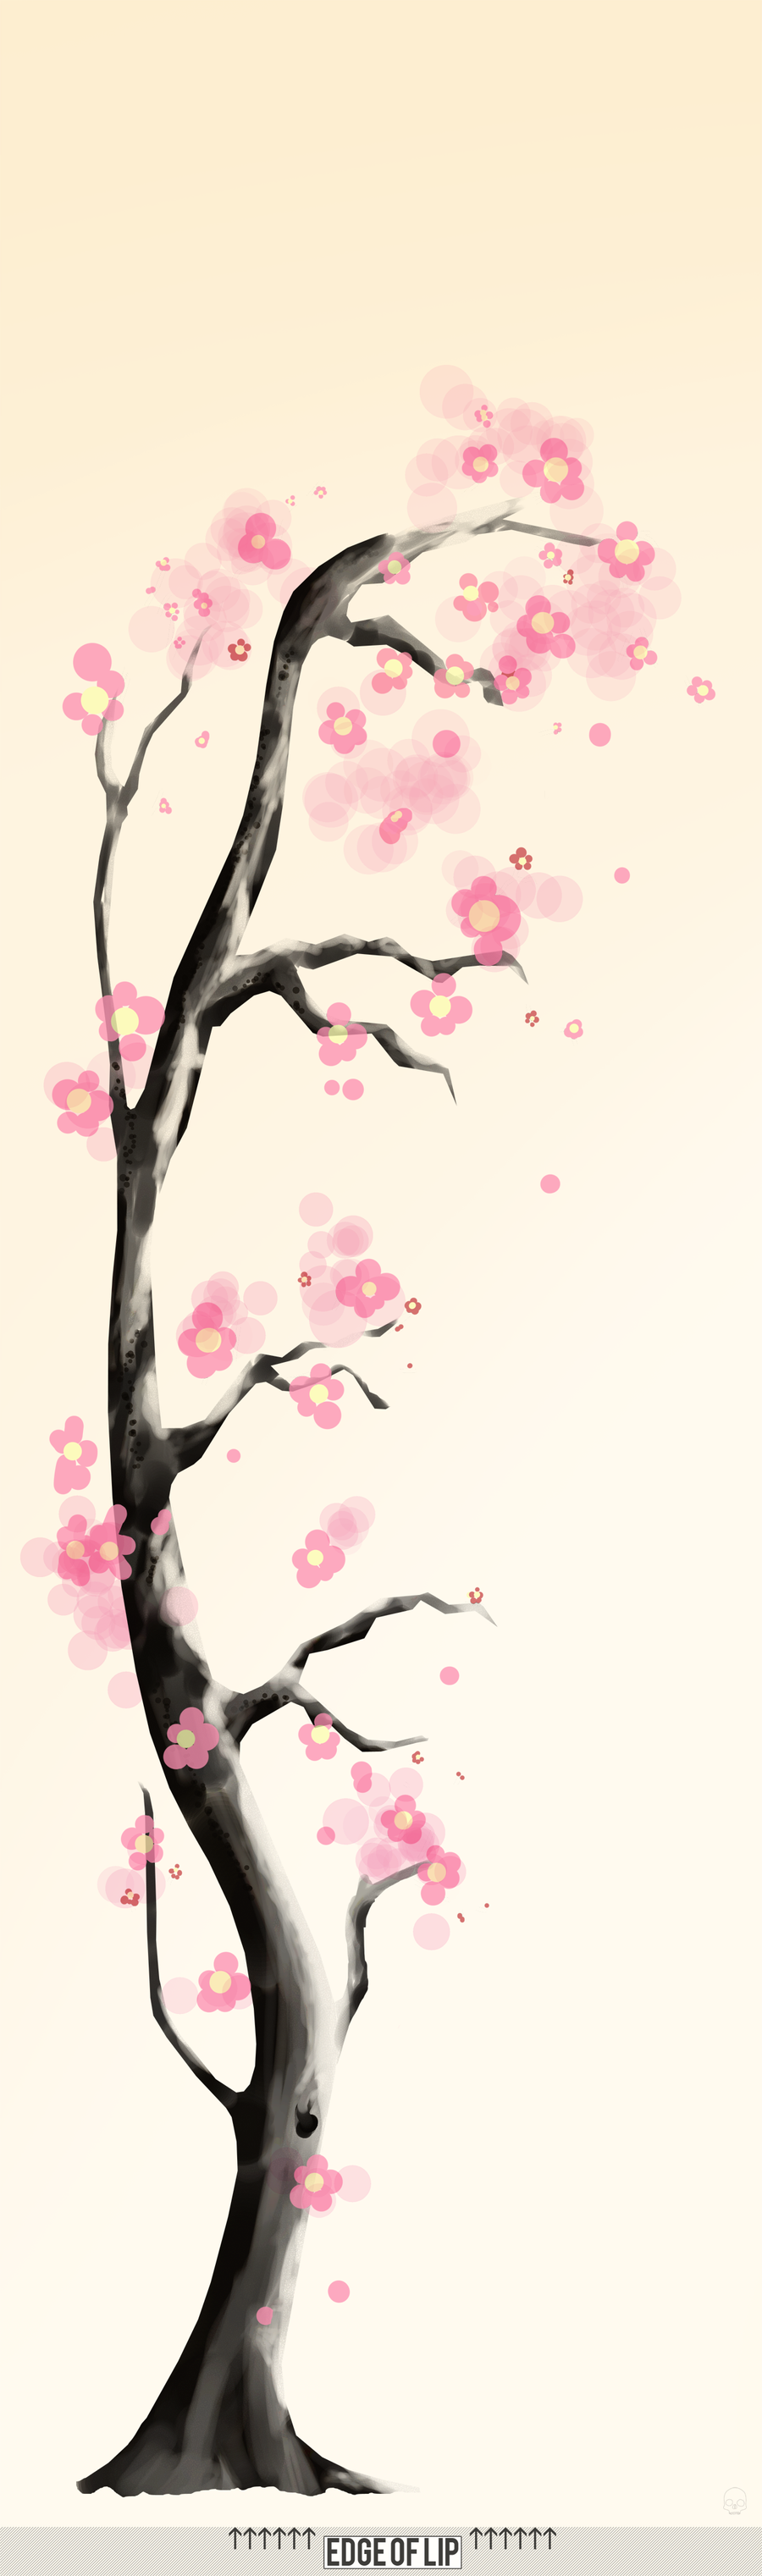 Cherry blossom wall mural by mil0oz on deviantart for Cherry blossom mural on walls